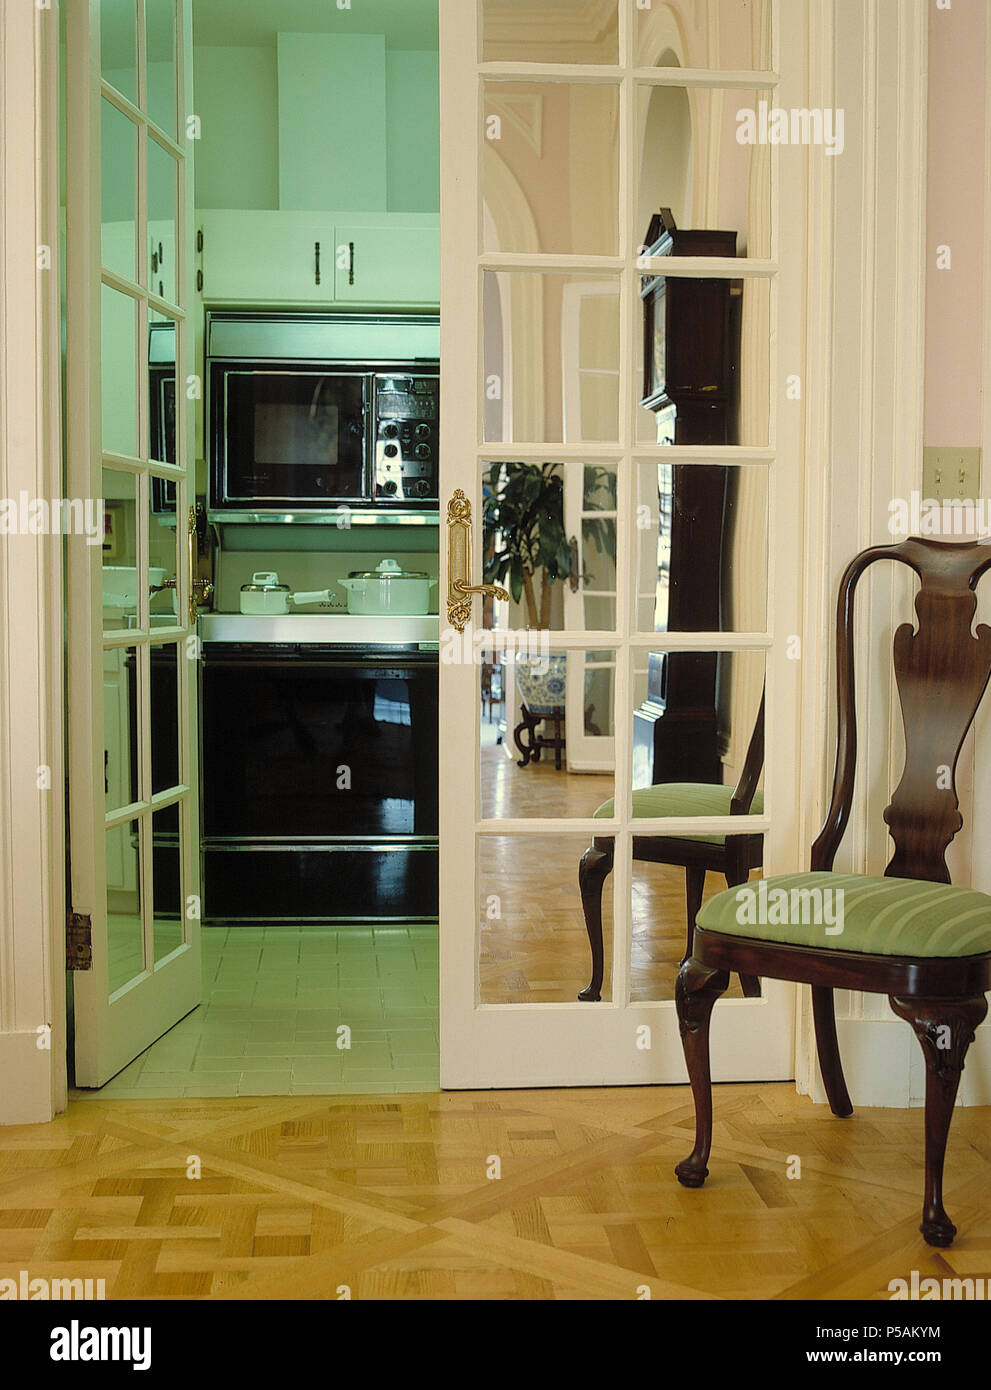 Vintasge Chair And Parquet Floor In Hall With Mirrored Double French Doors To Kitchen Beyond Stock Photo Alamy